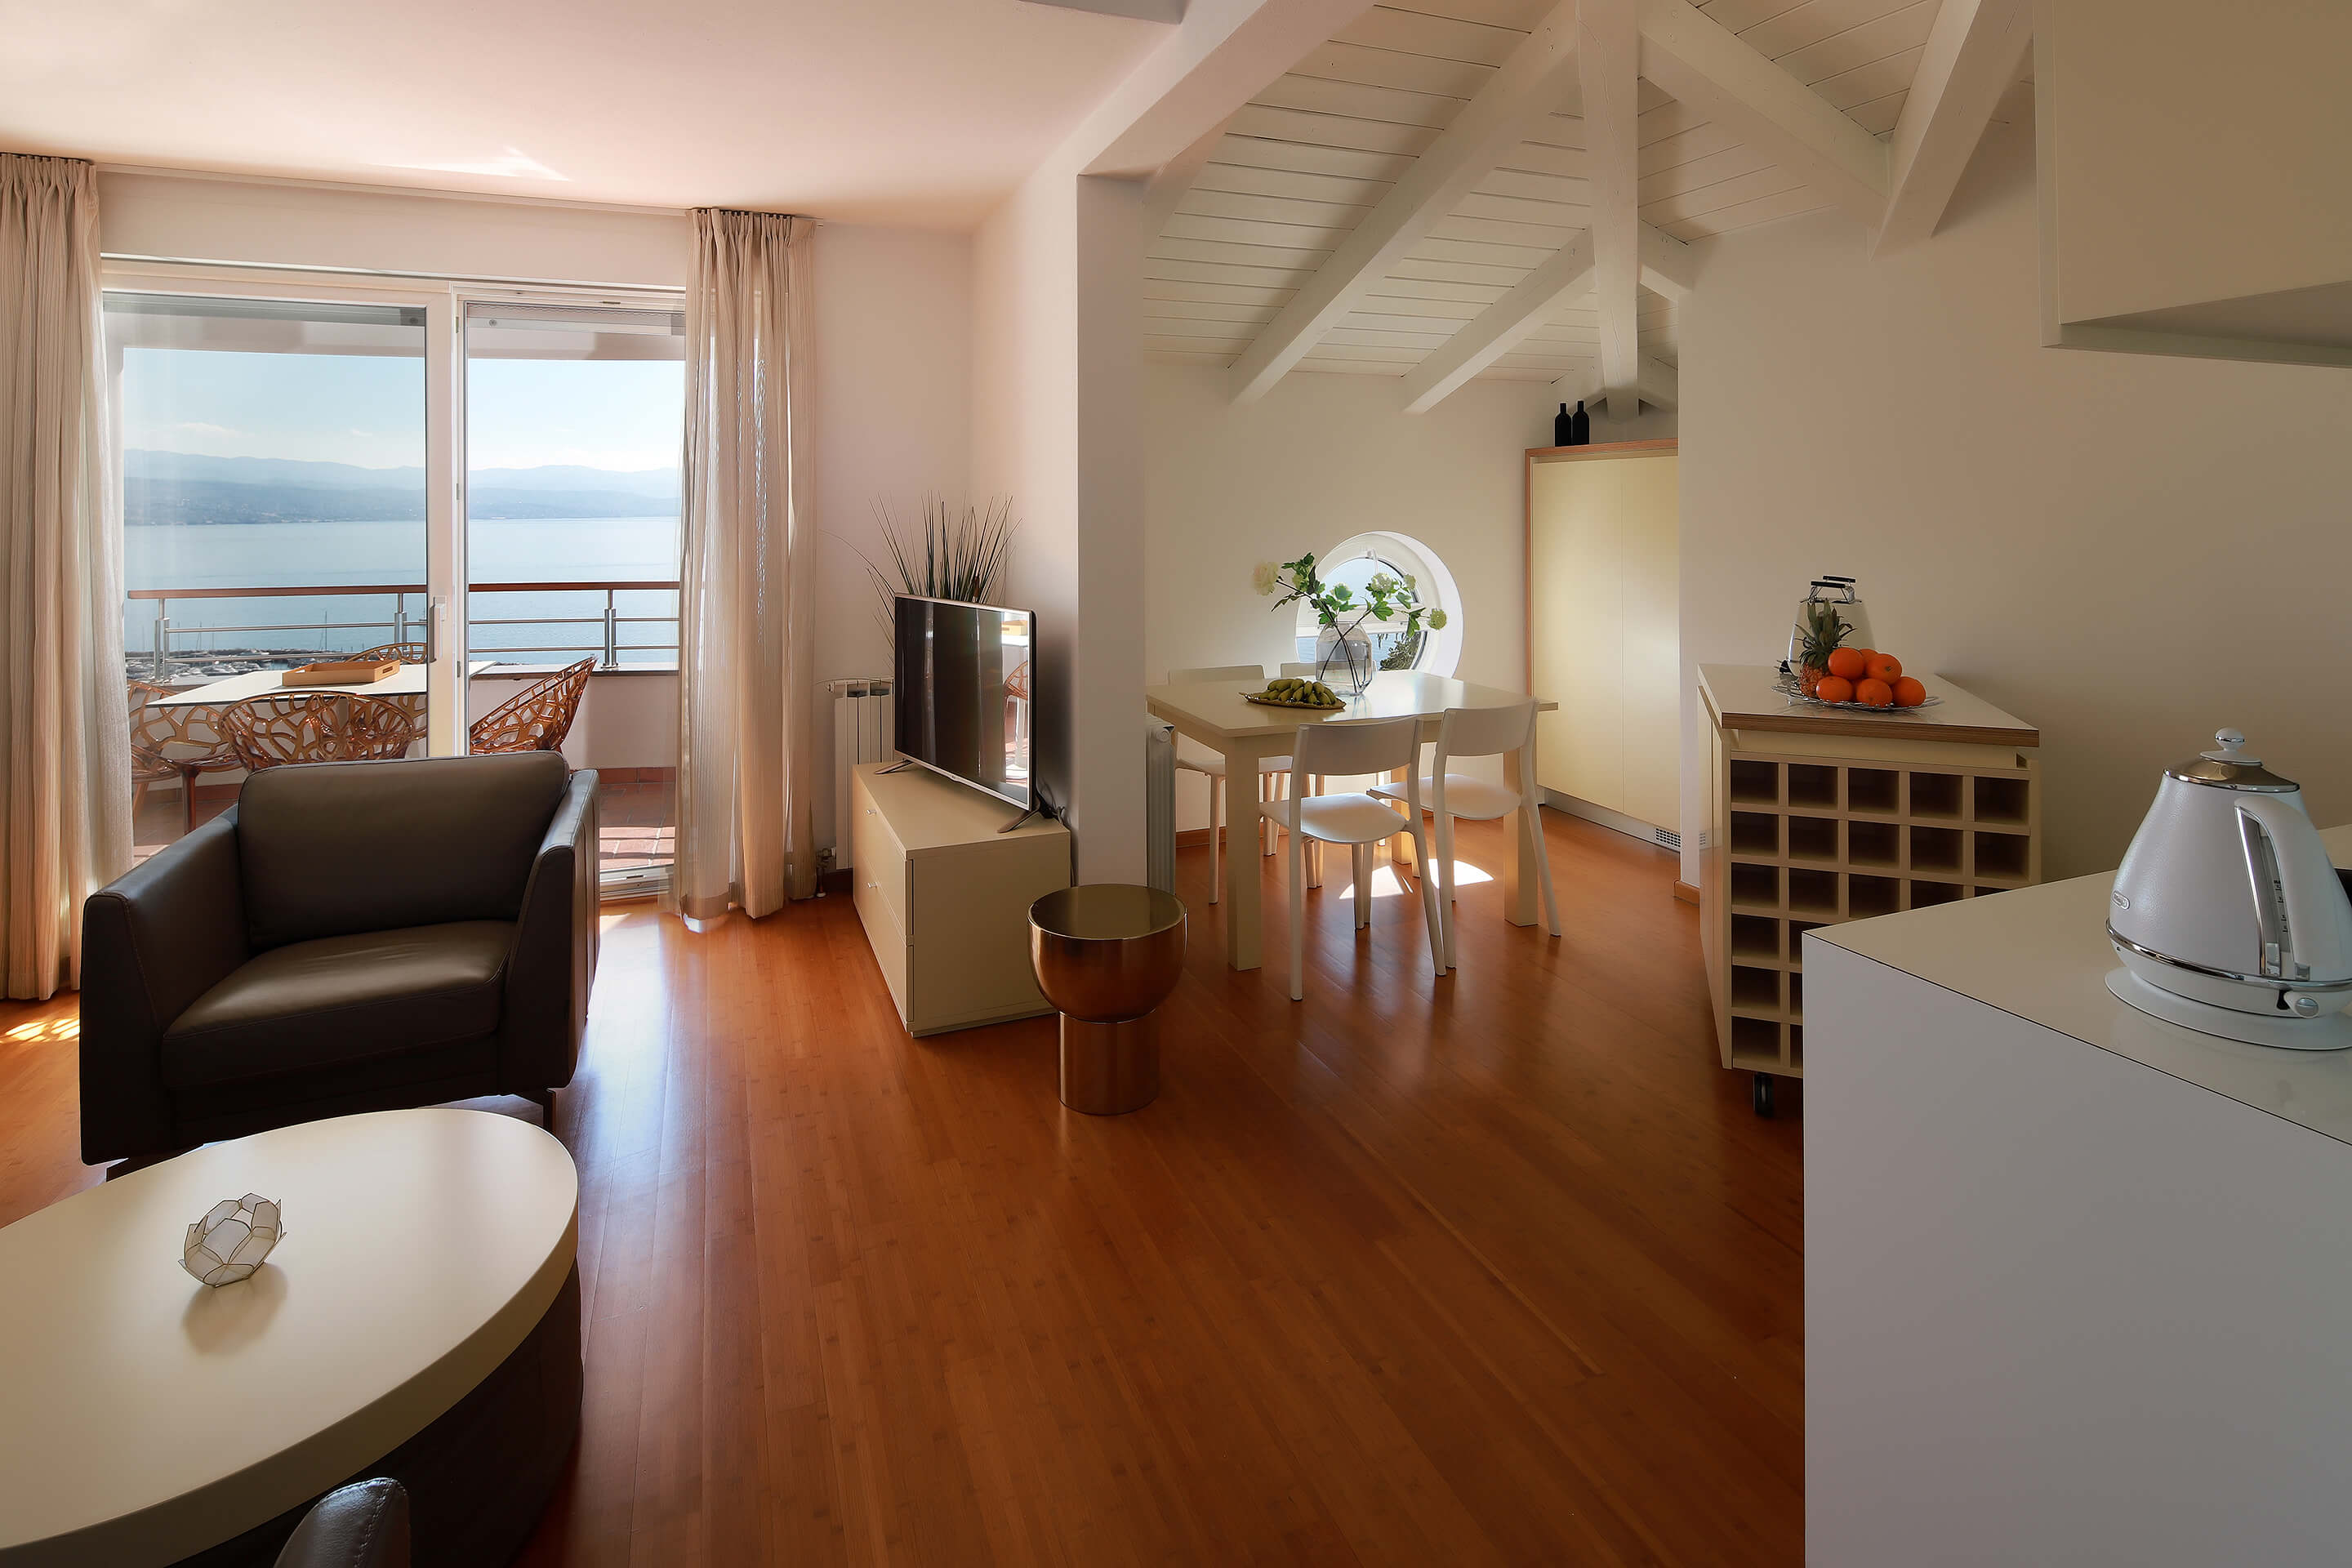 A5 - new luxury - living room - kitchen - dining area - balcony - sea view